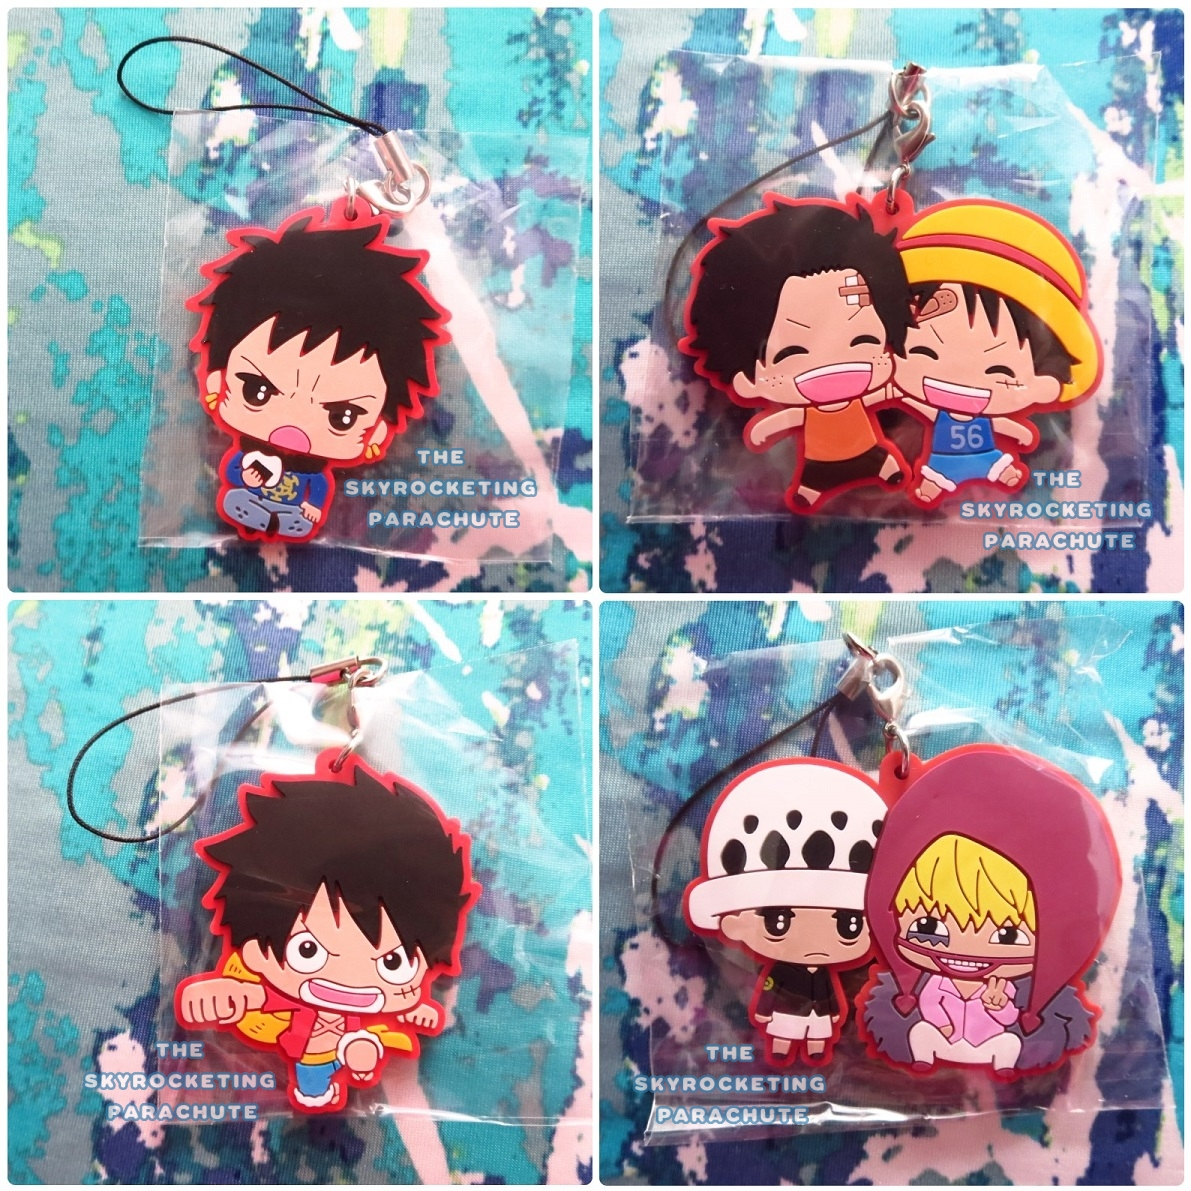 One Piece Rubber Strap C2 Trafalgar Law Corazon Monkey D Luffy Ace Sabo Shanks Bepo Marco